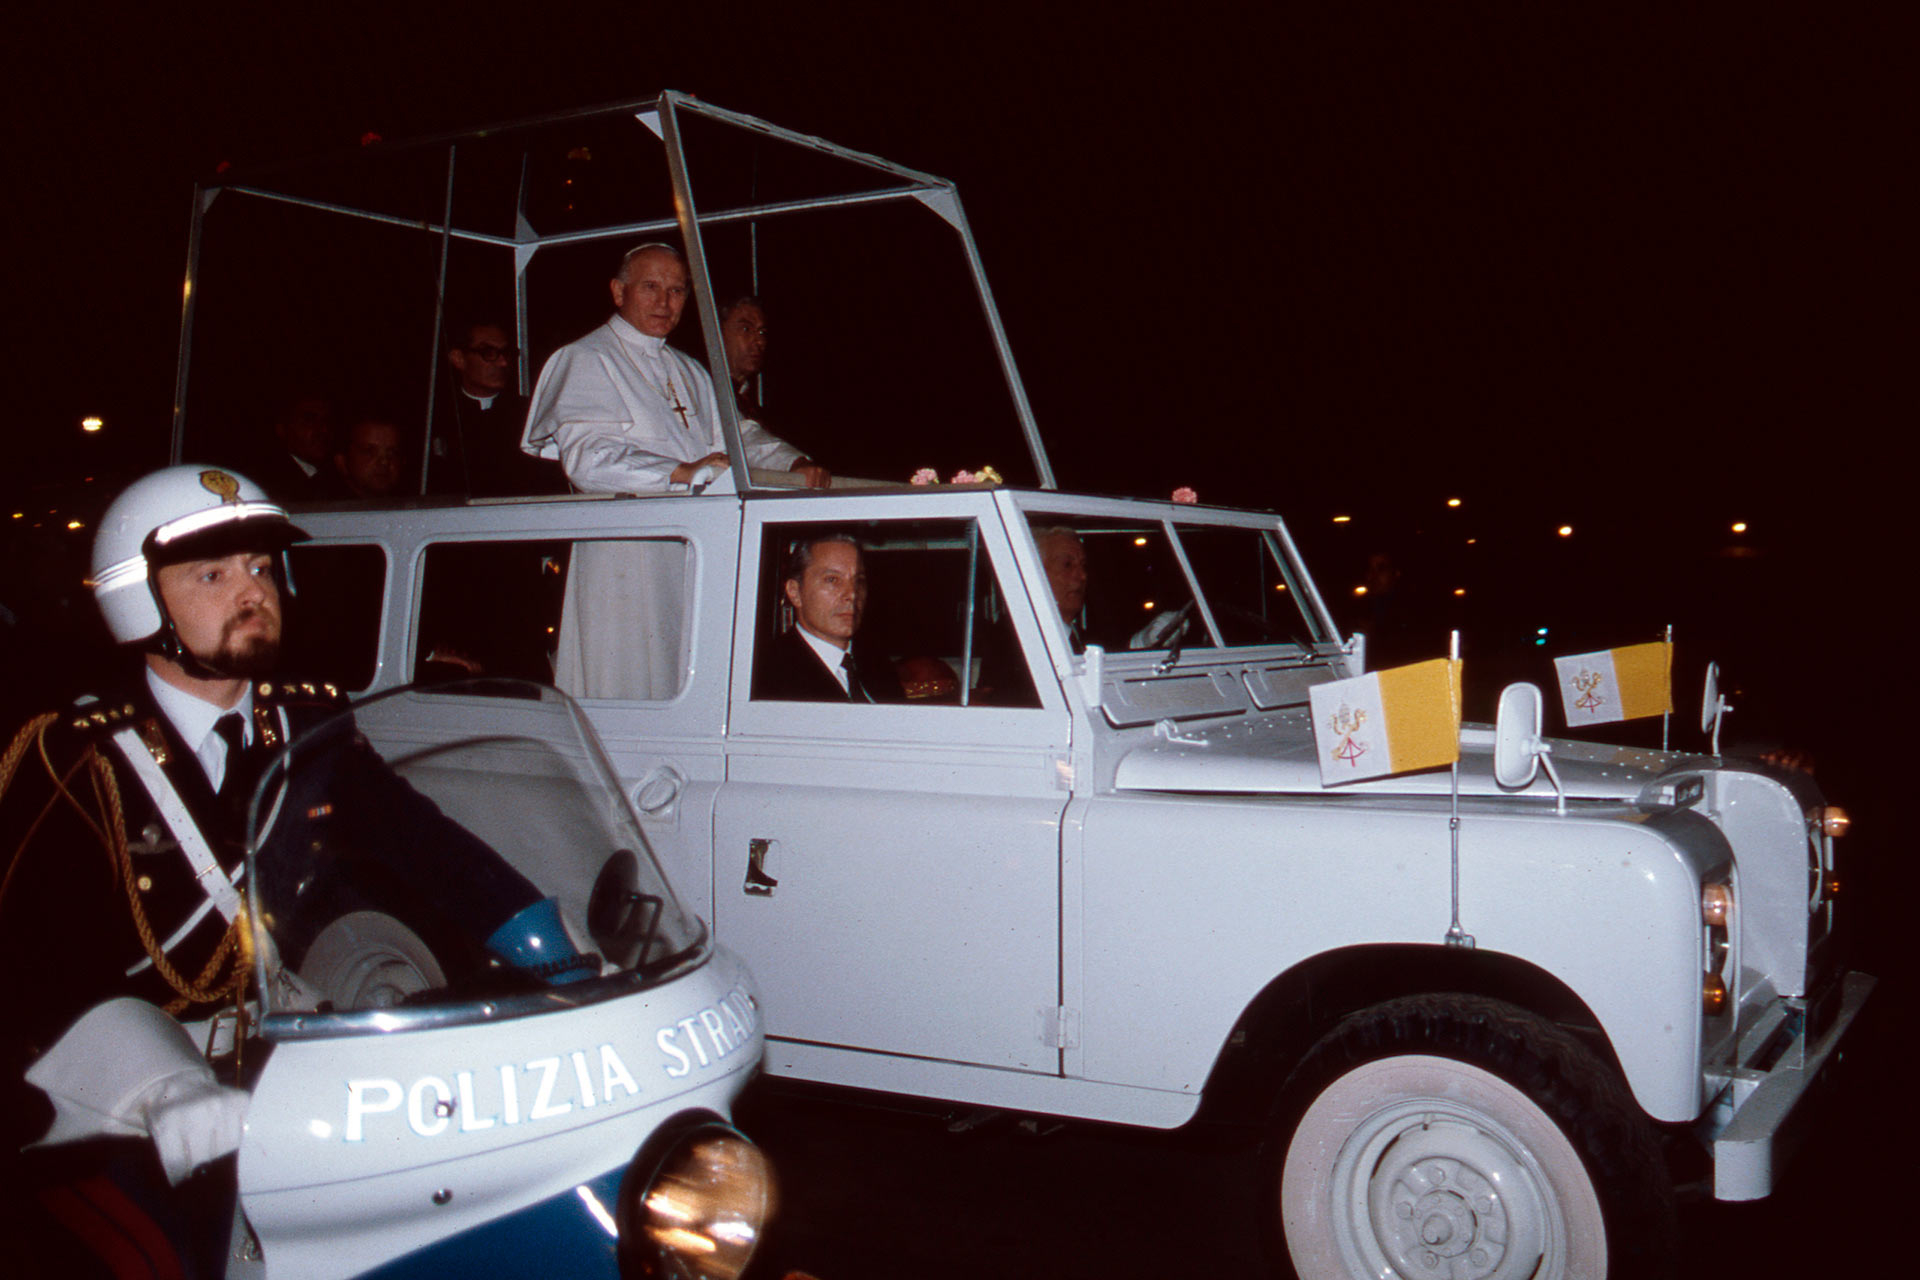 After two very intense days of commitments, Pope Woytila, passing in Popemobile through the streets of Palermo, is transferred to the port of Palermo, where a helicopter was waiting for him to bring him to Punta Raisi airport, now named: ?Falcone and Borsellino airport?.